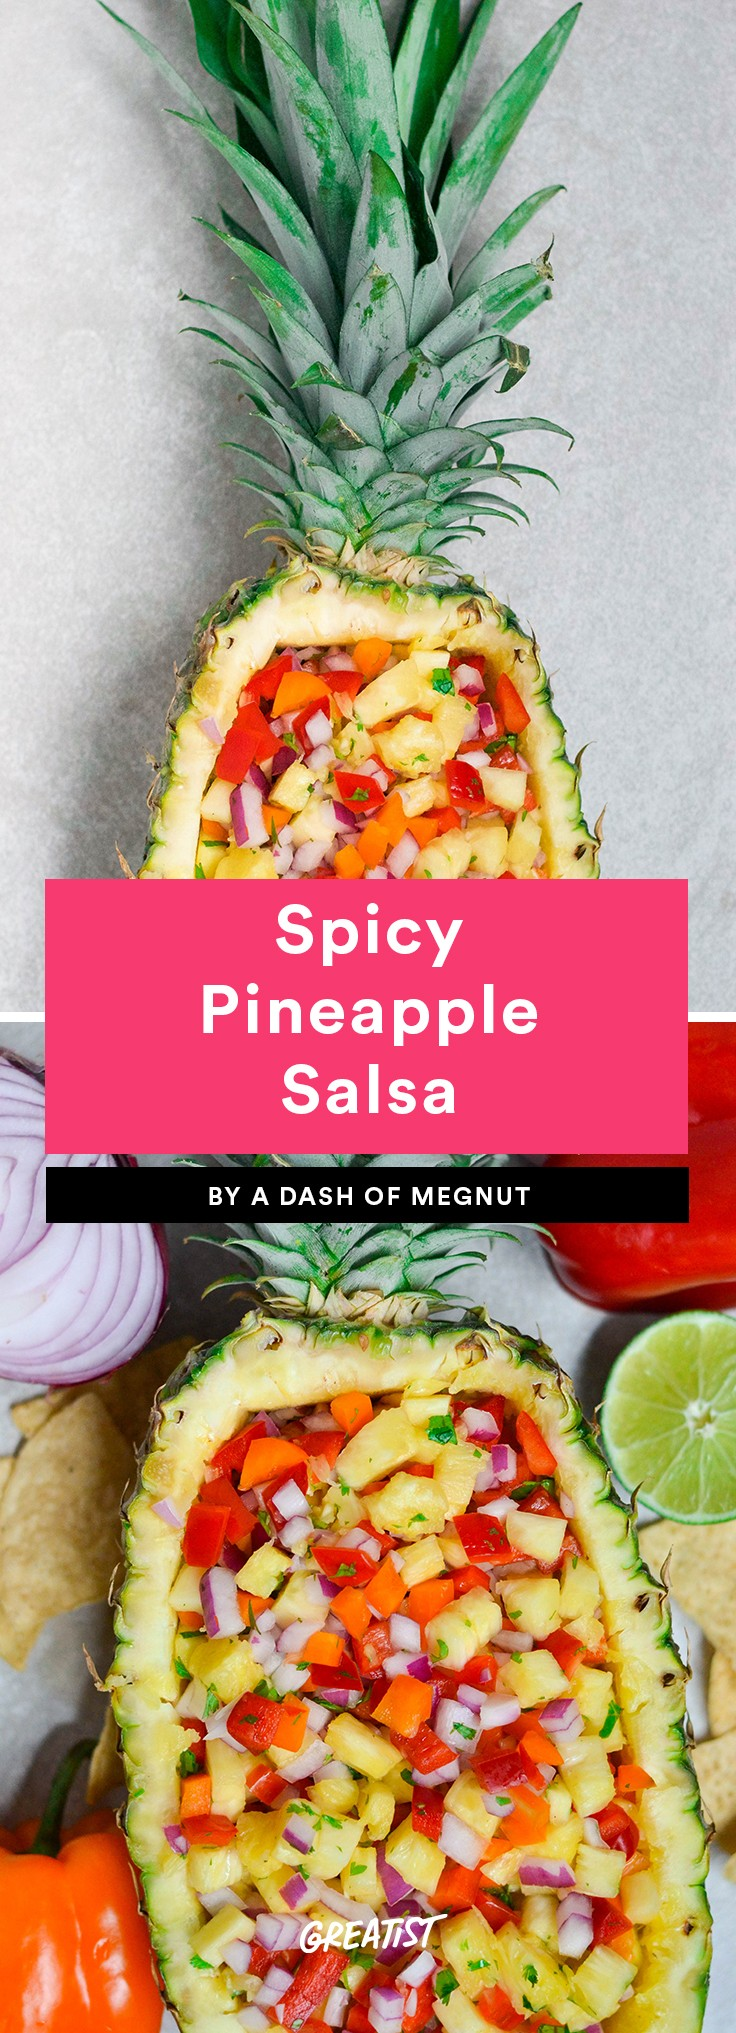 Spicy Pineapple Salsa